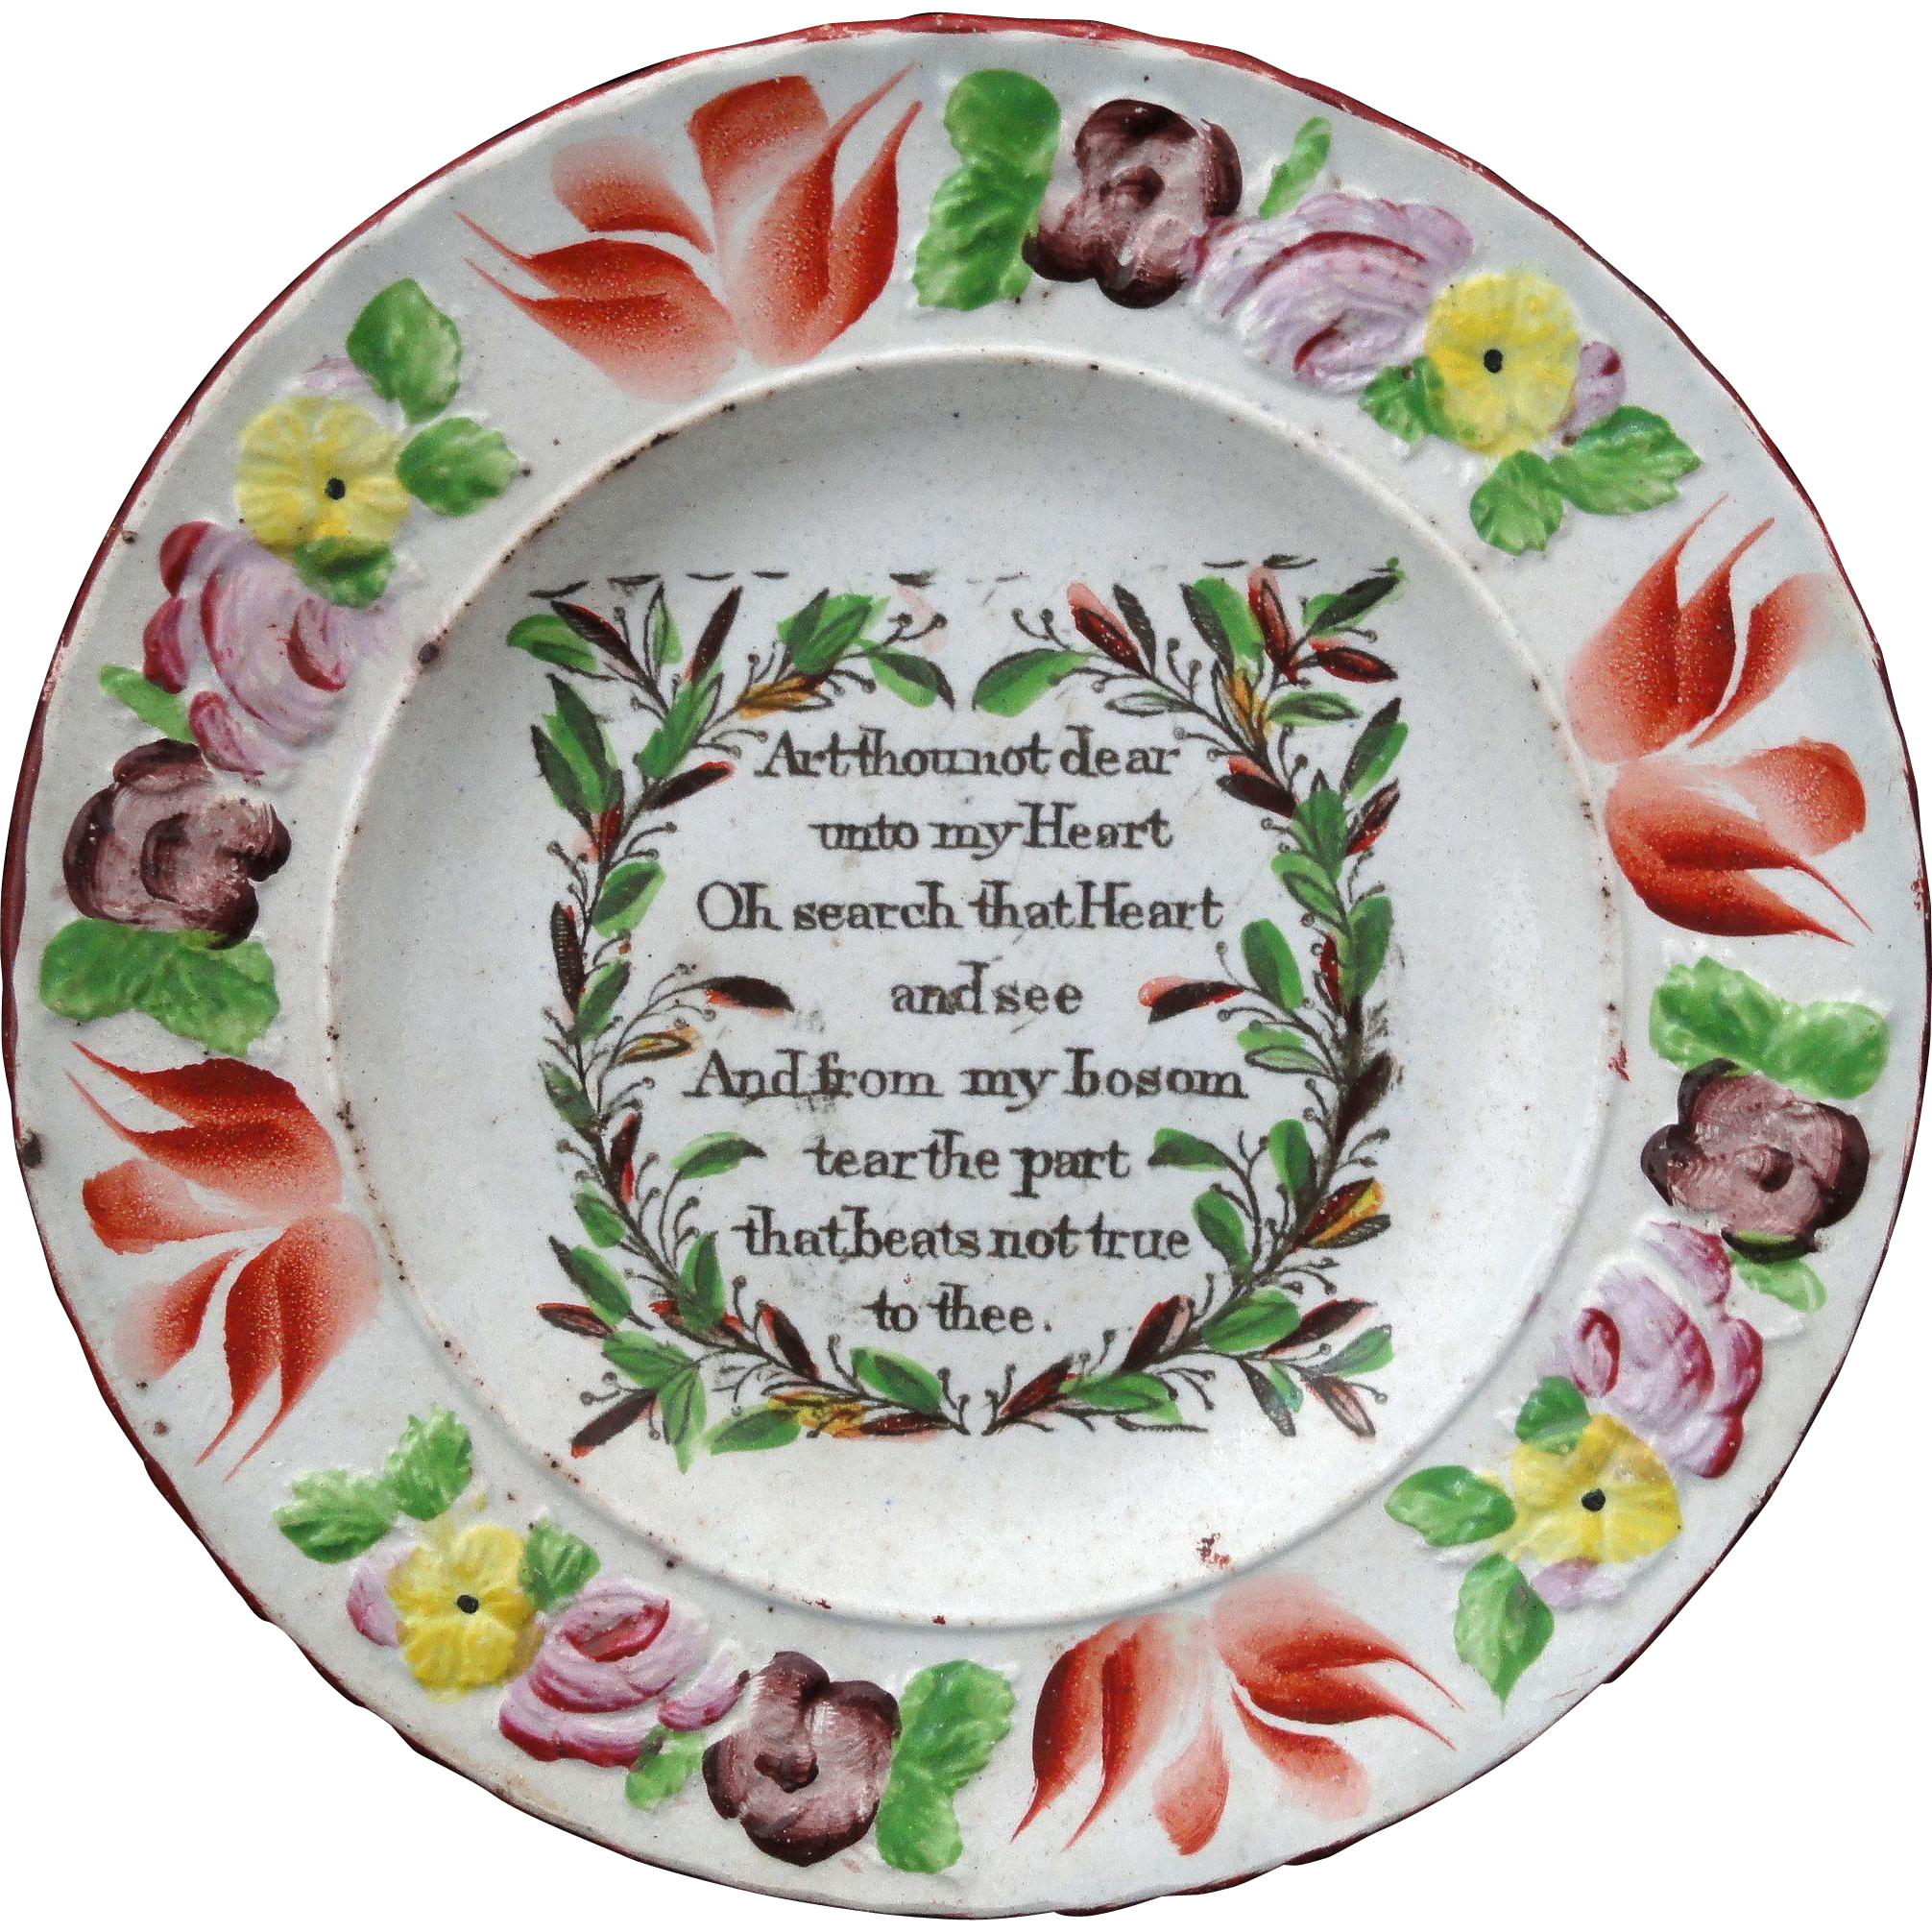 Early Painted Creamware Childs Plate ~ LOVE SONNET POEM 1810 Staffordshire